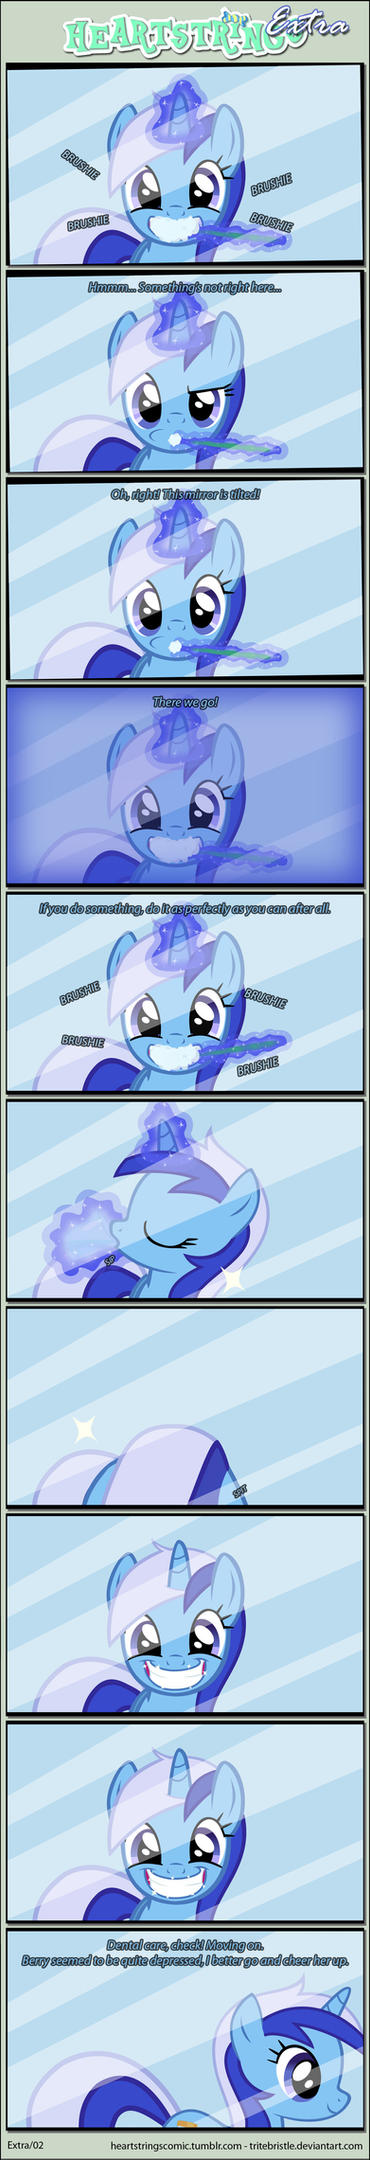 Heartstrings Extra p2 - Brushie brushie! by TriteBristle